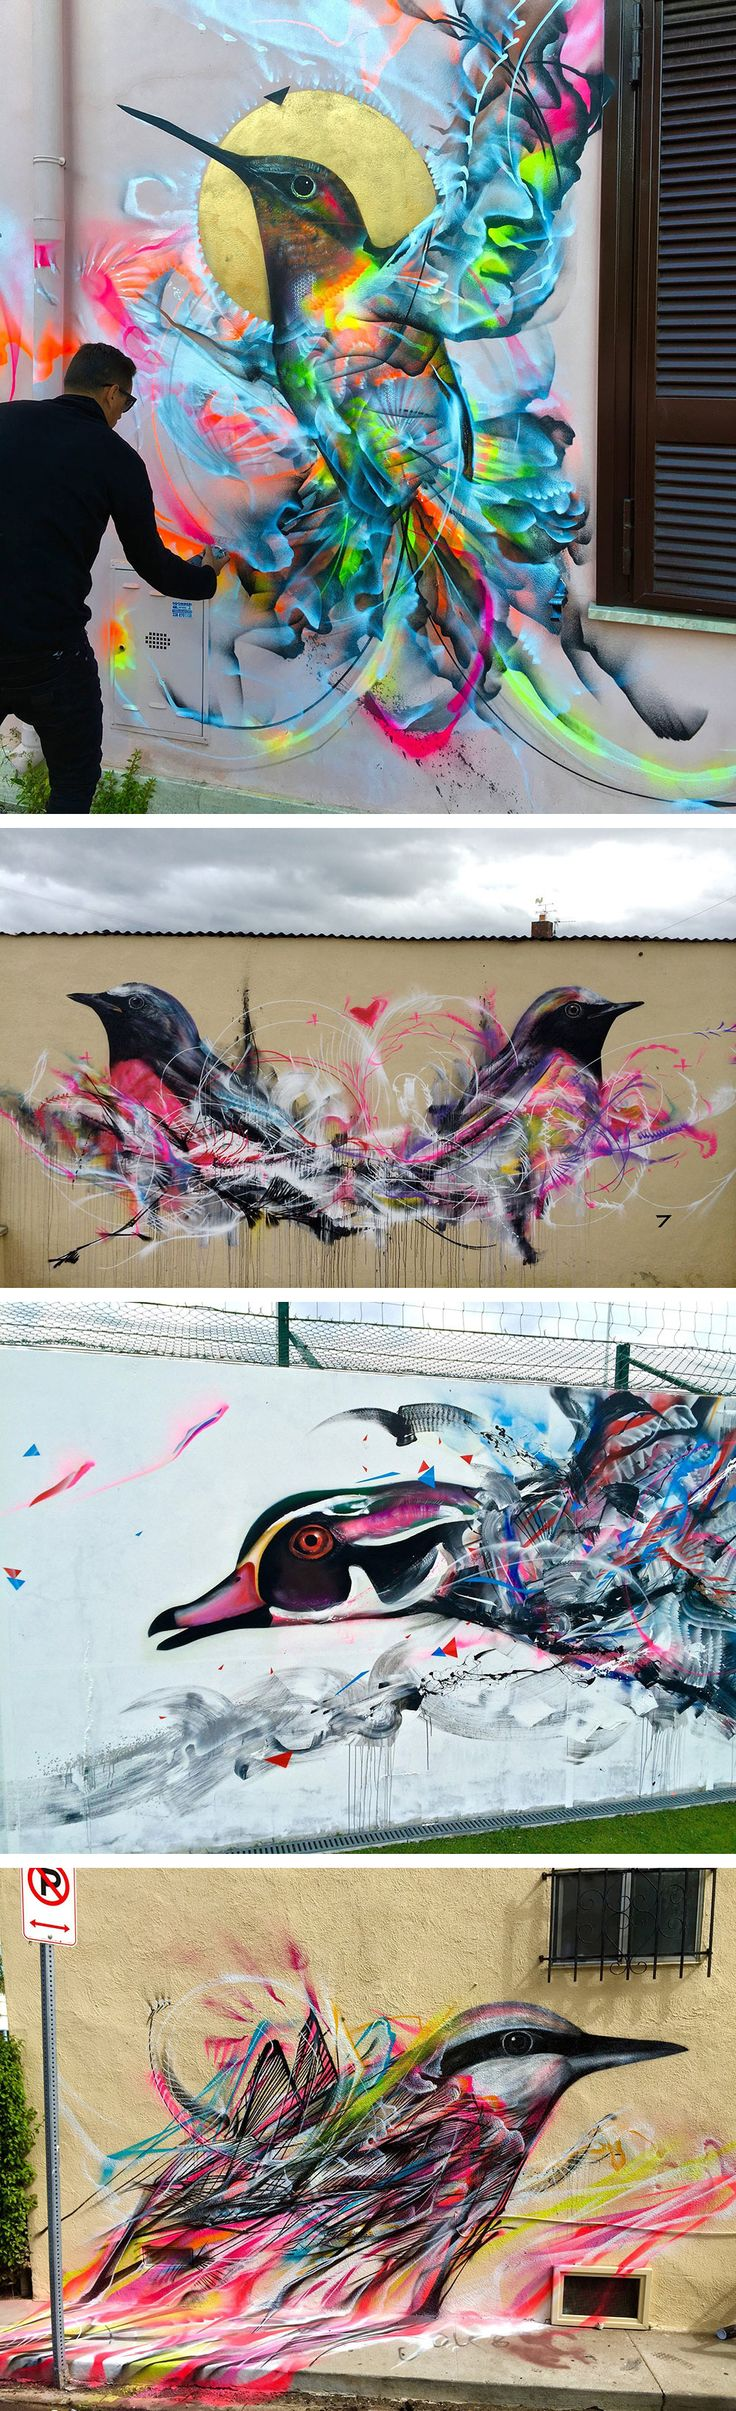 Wall art graffiti - Street Art Can Be So Fascinating Figures Of Birds Emerge From A Kinetic Flurry Of Spray Paint